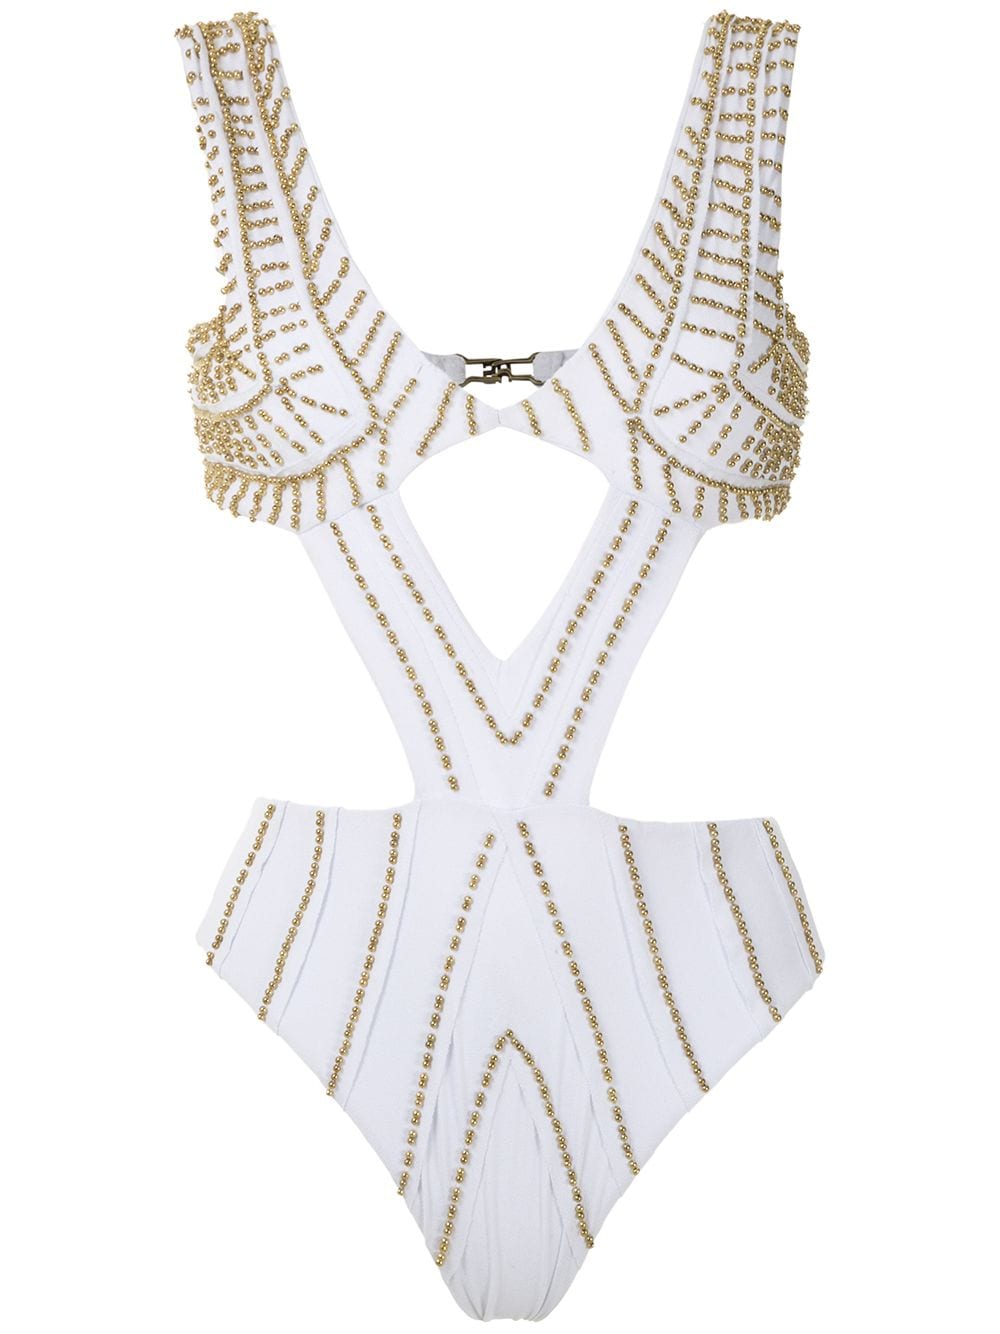 Amir Slama embroidered cut out swimsuit - White von Amir Slama